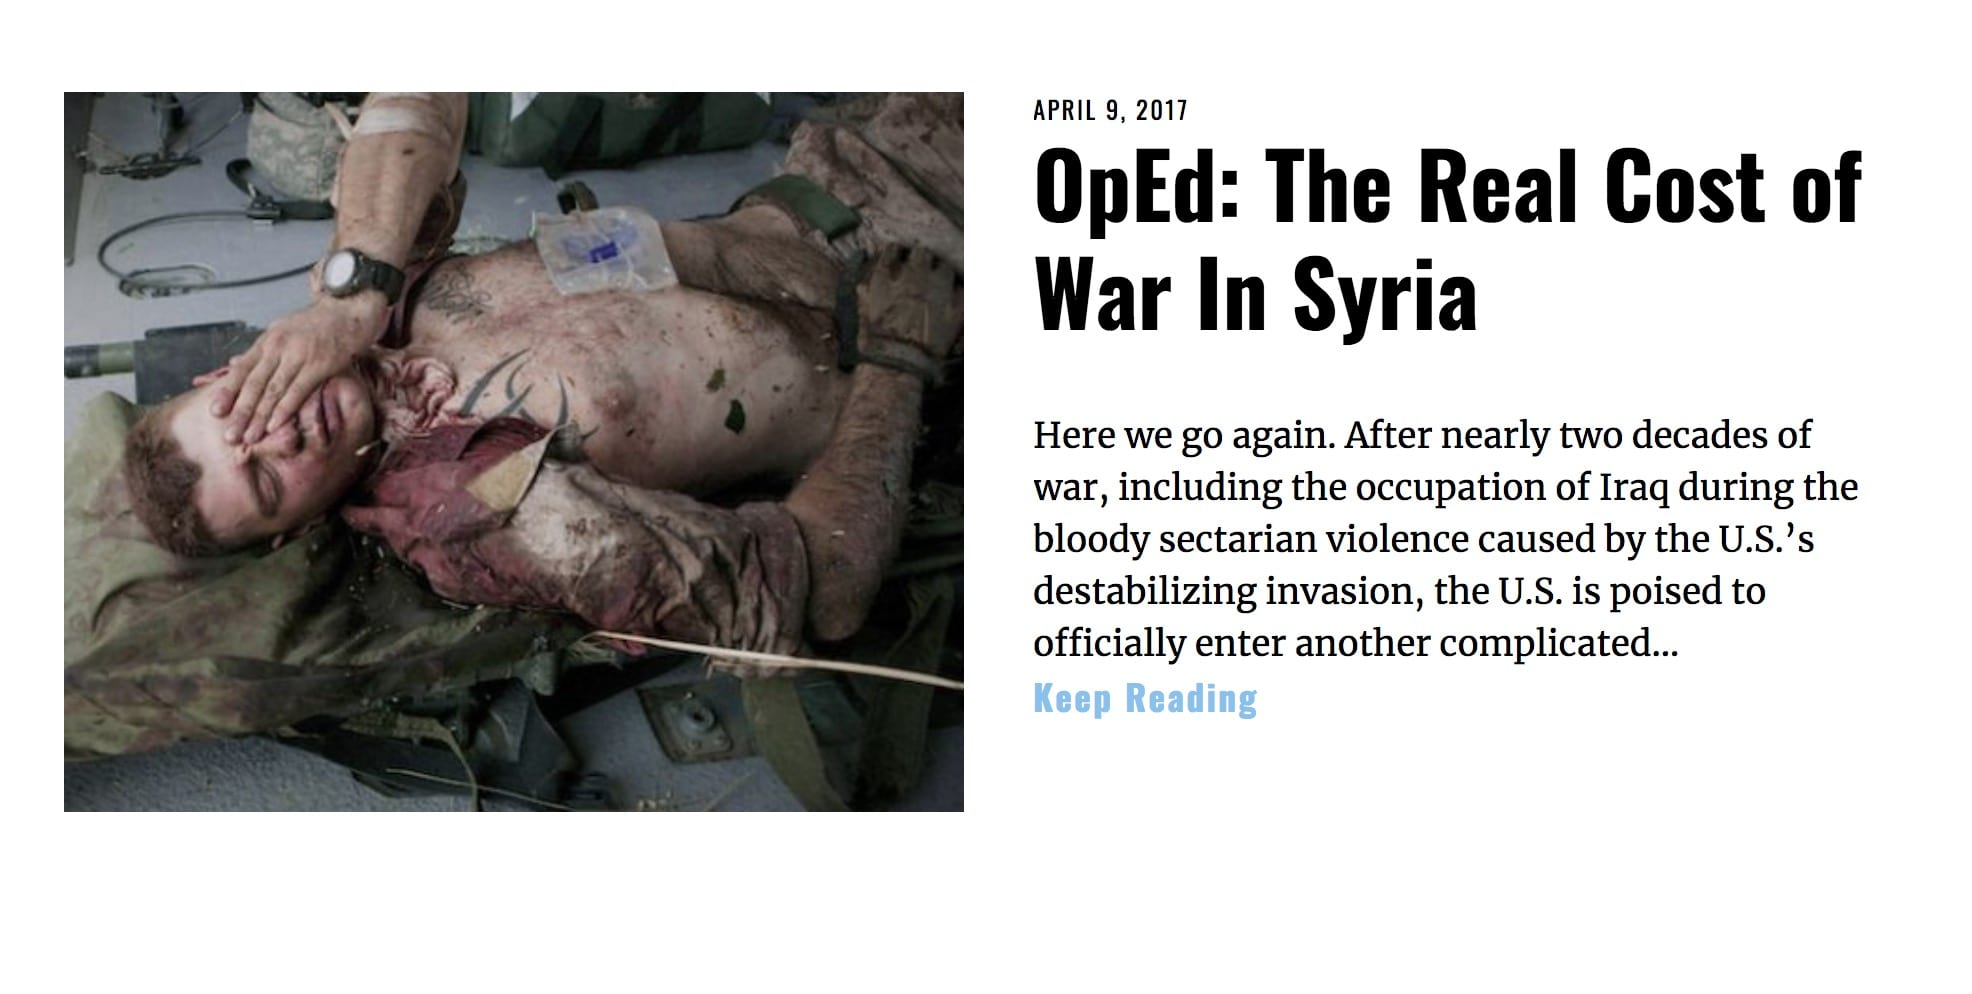 image Lima Charlie News Headline Real Cost of War in Syria APR 9 2017